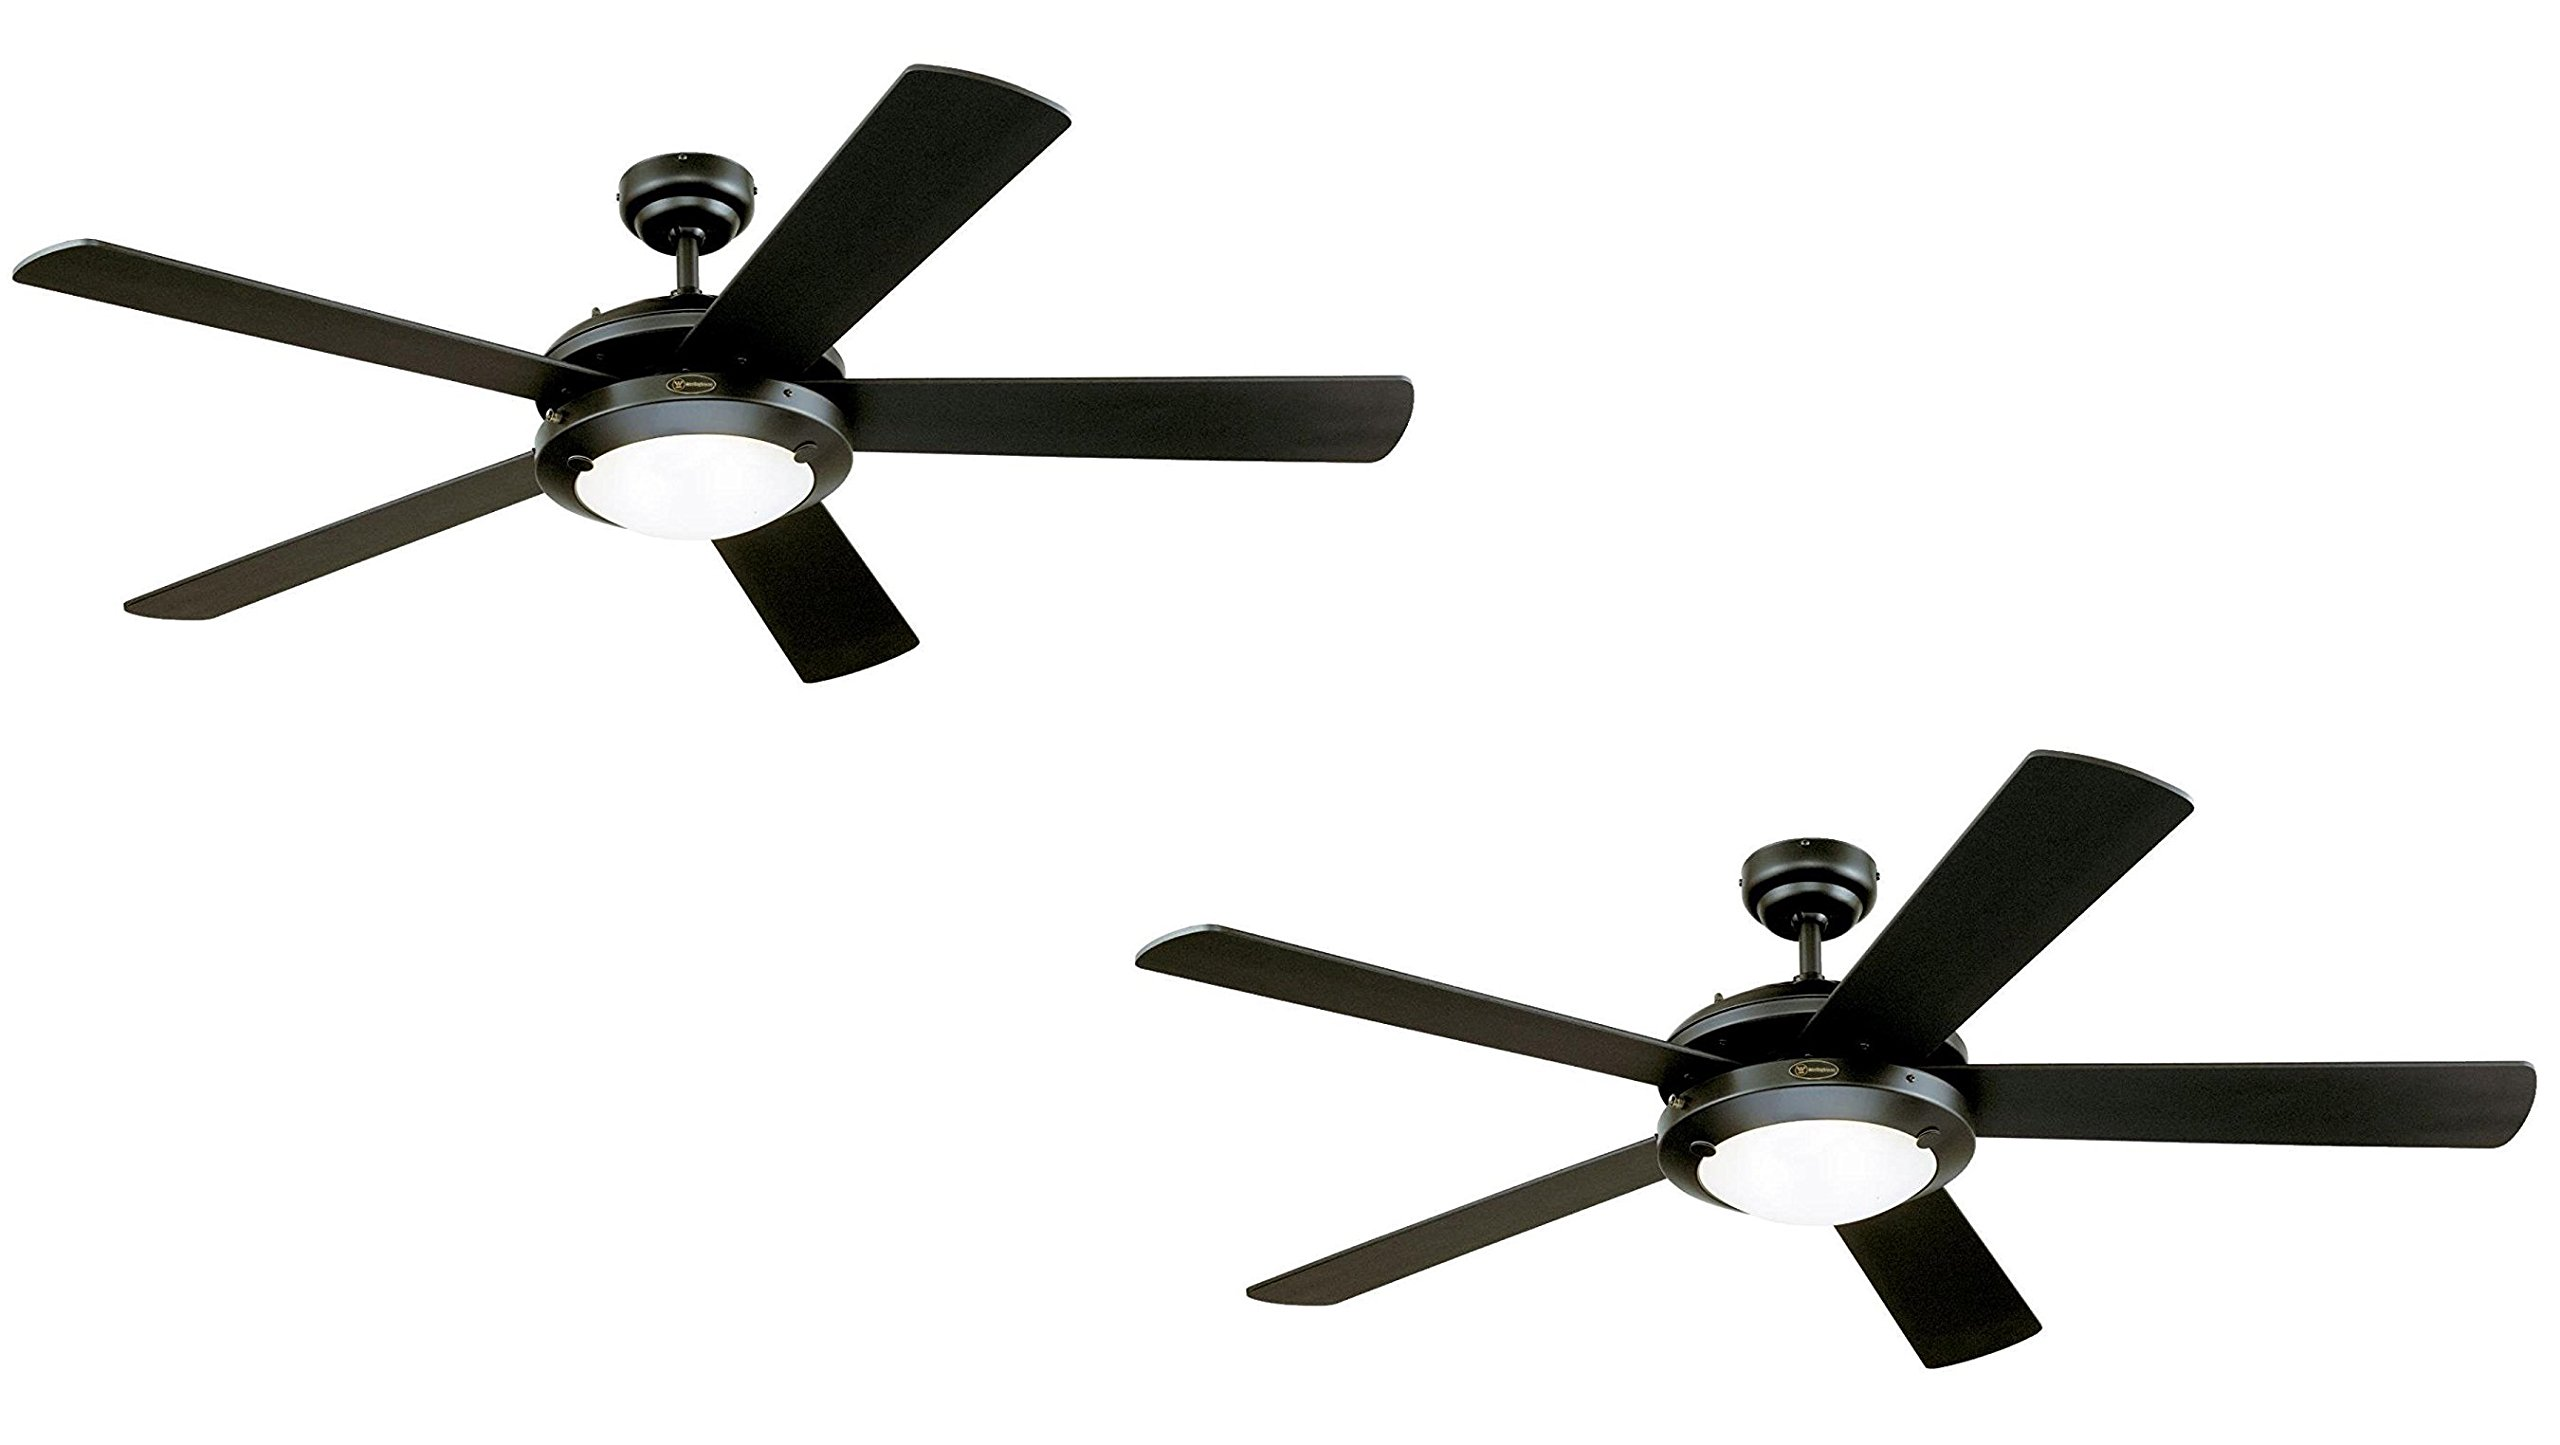 Ciata Lighting 52-Inch Matte Black Indoor Ceiling Fan, Light Kit with Frosted Glass (Black 2 Pack)